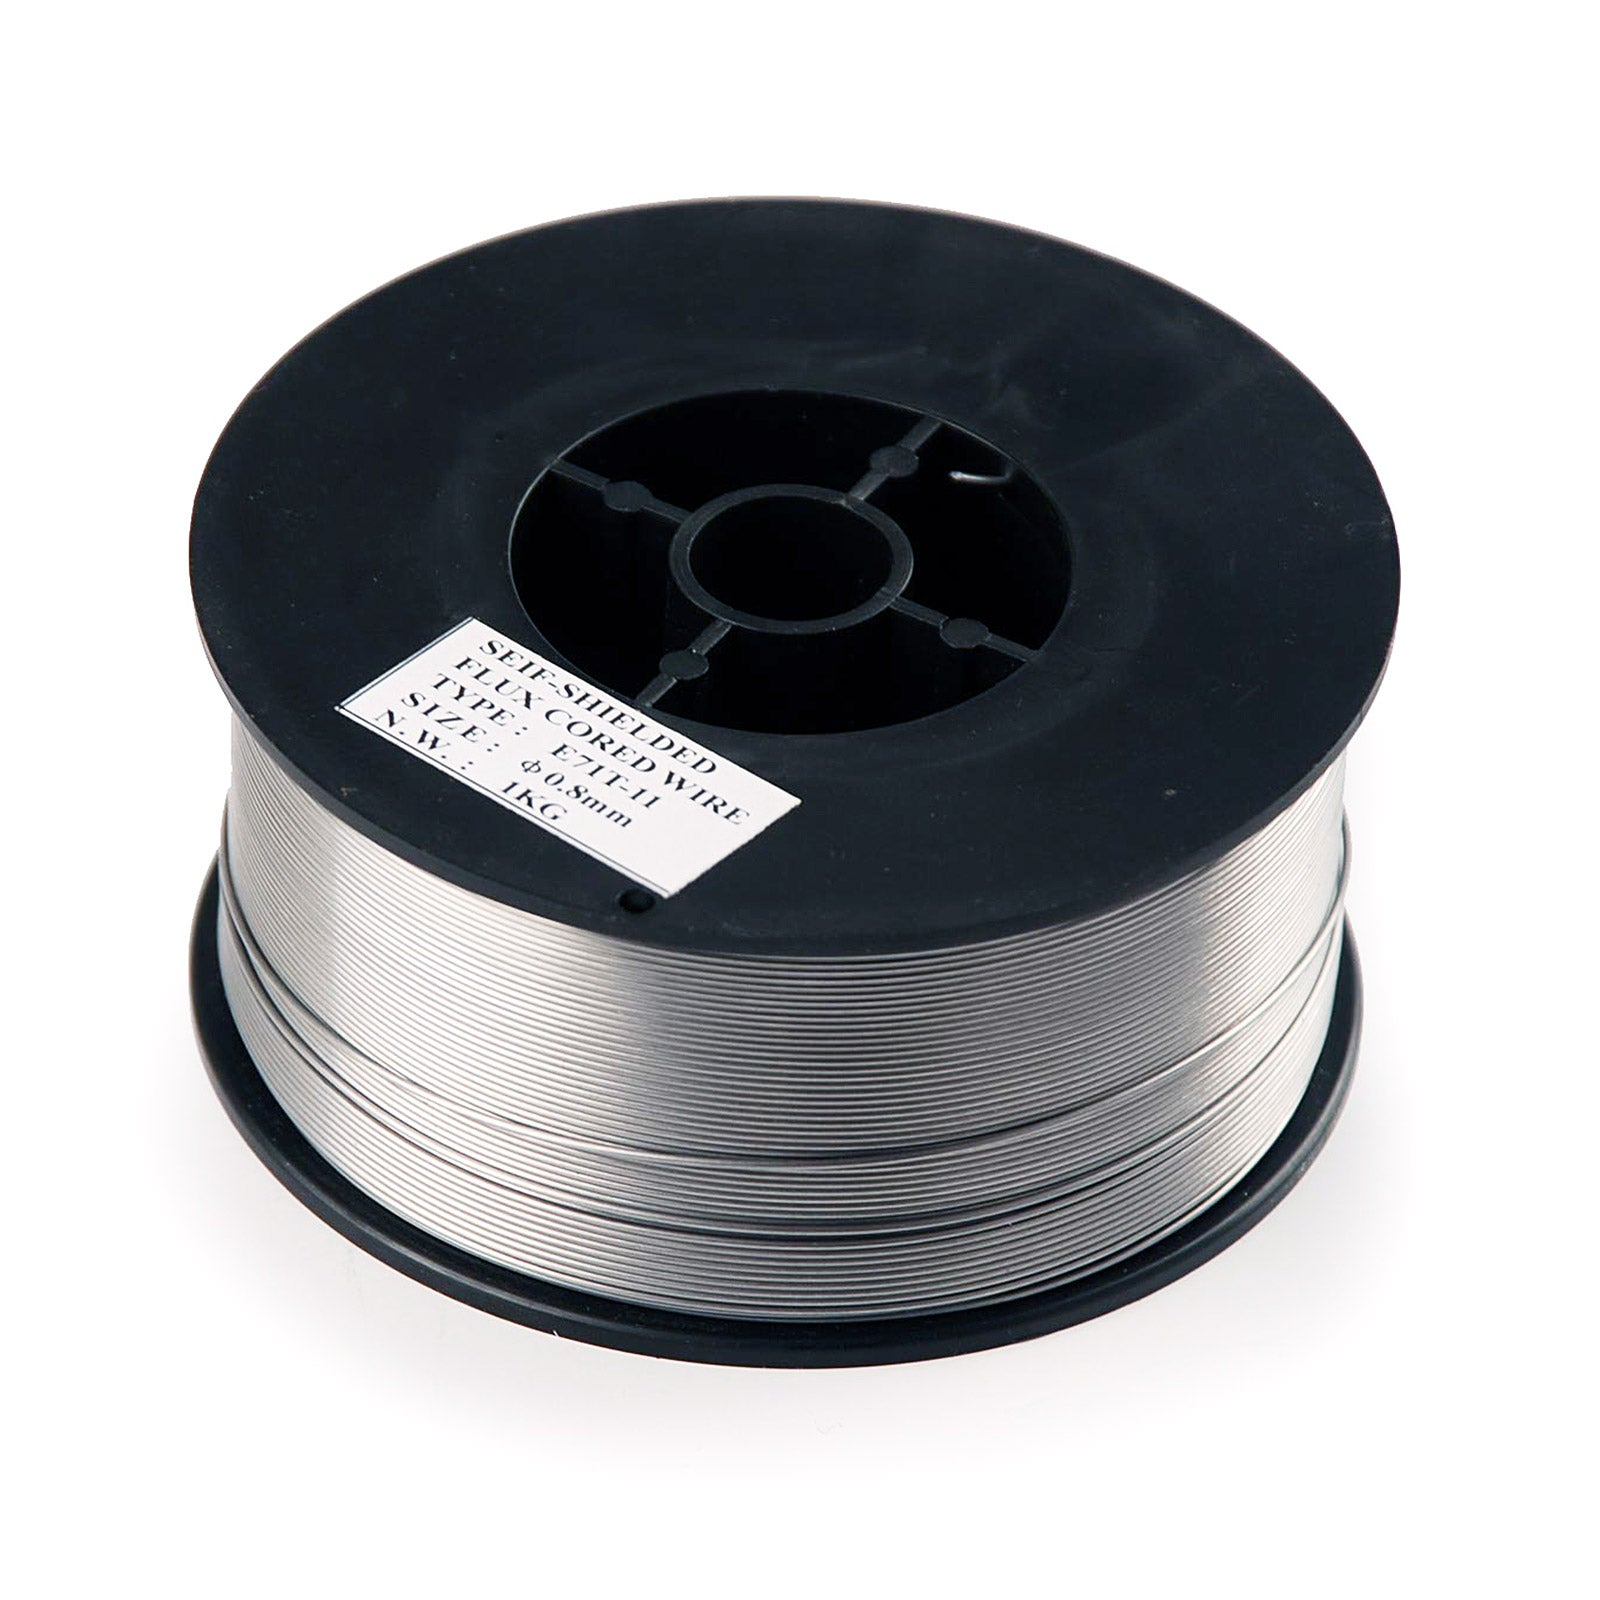 Image of 0.8mm Gasless Mig Welding Wire